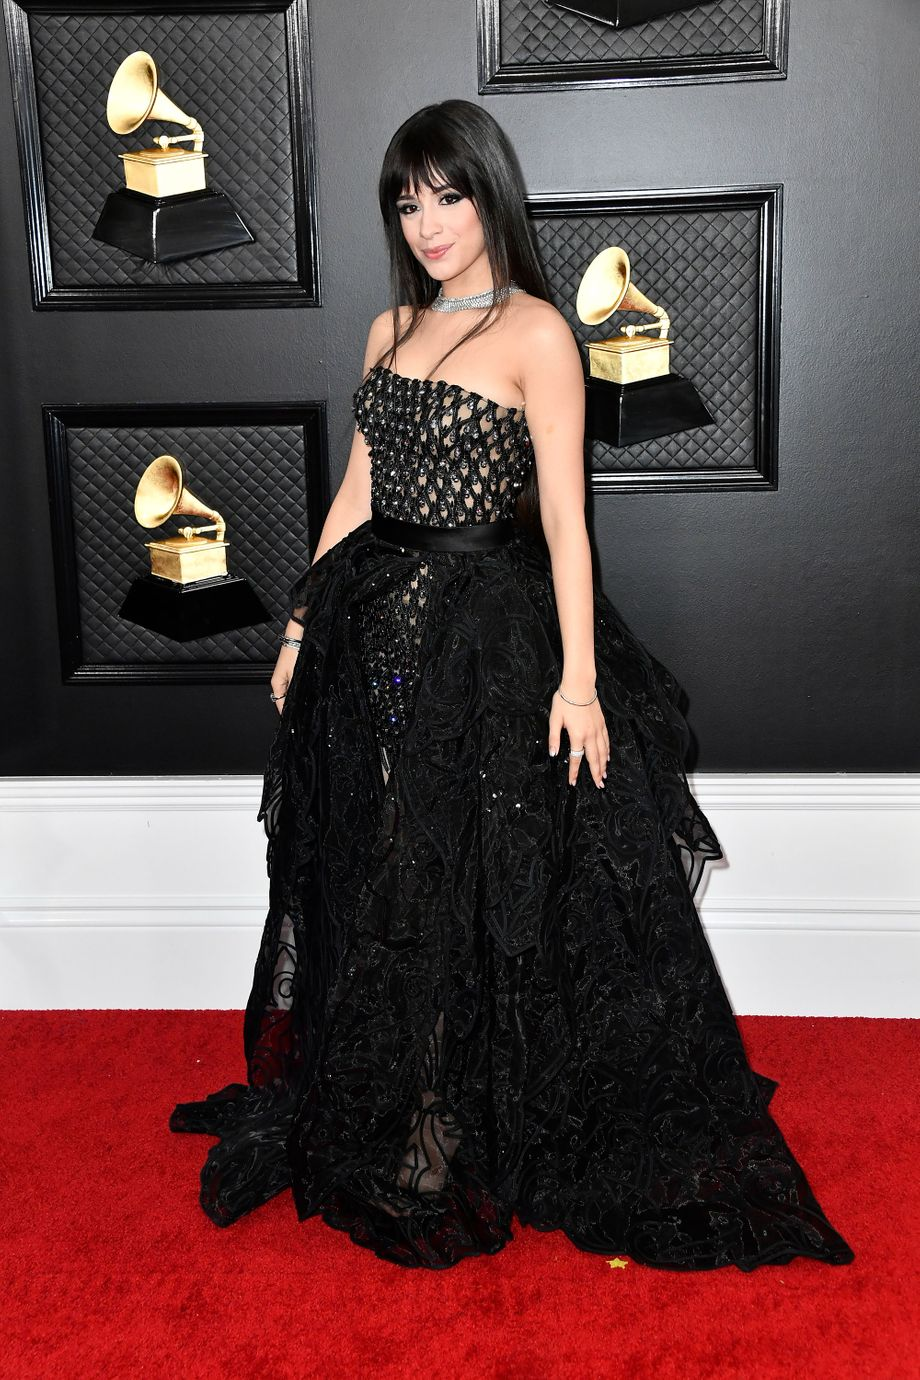 15+ Grammys 2020 Outfits